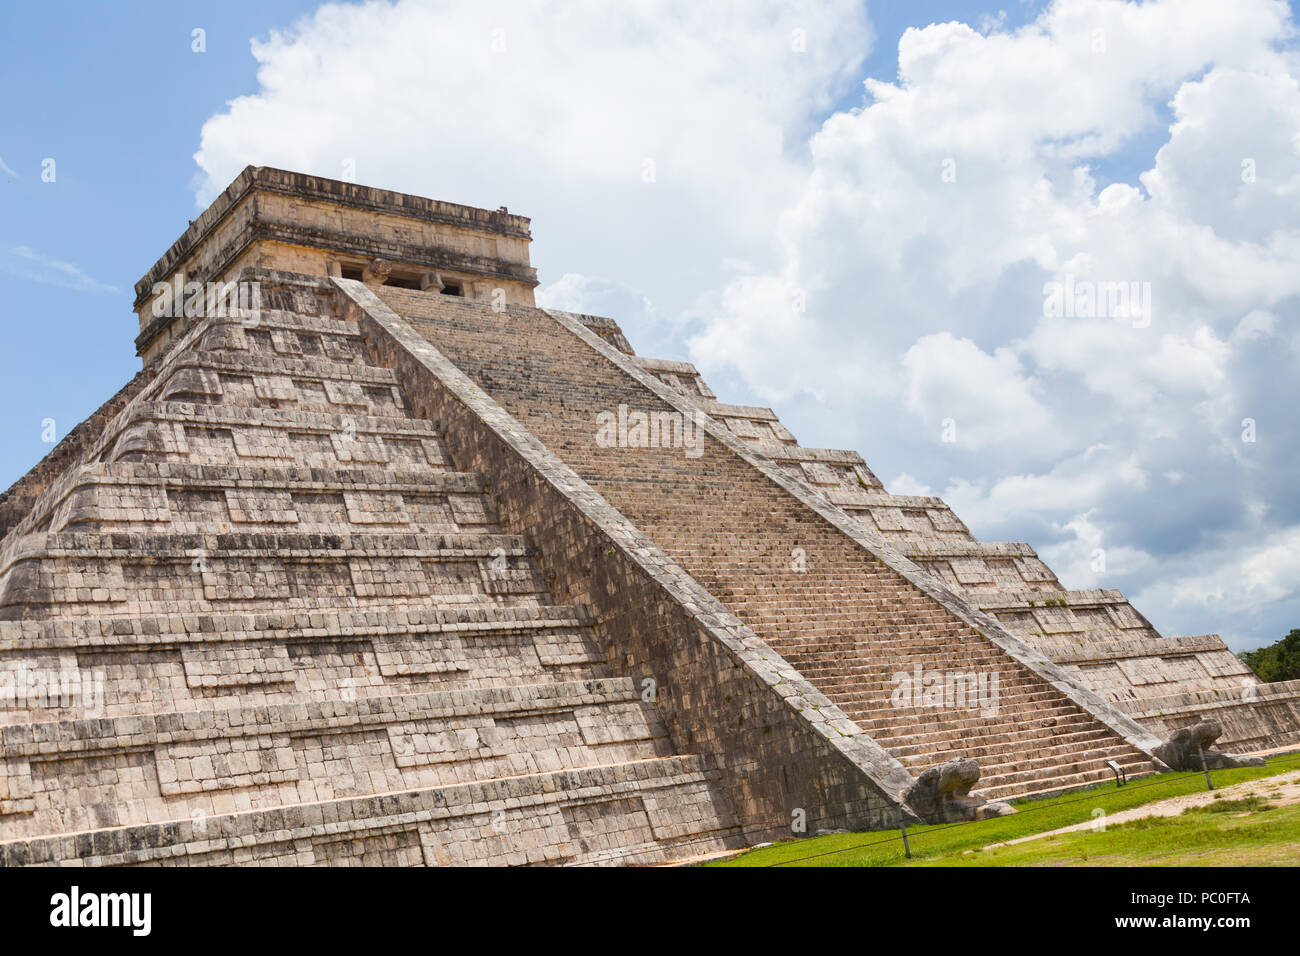 A view of 'Temple of Kukulkan (El Castillo)' most famous pyramid at Chichén-Itzá archeological site in the Yucatan peninsula Mexico. - Stock Image